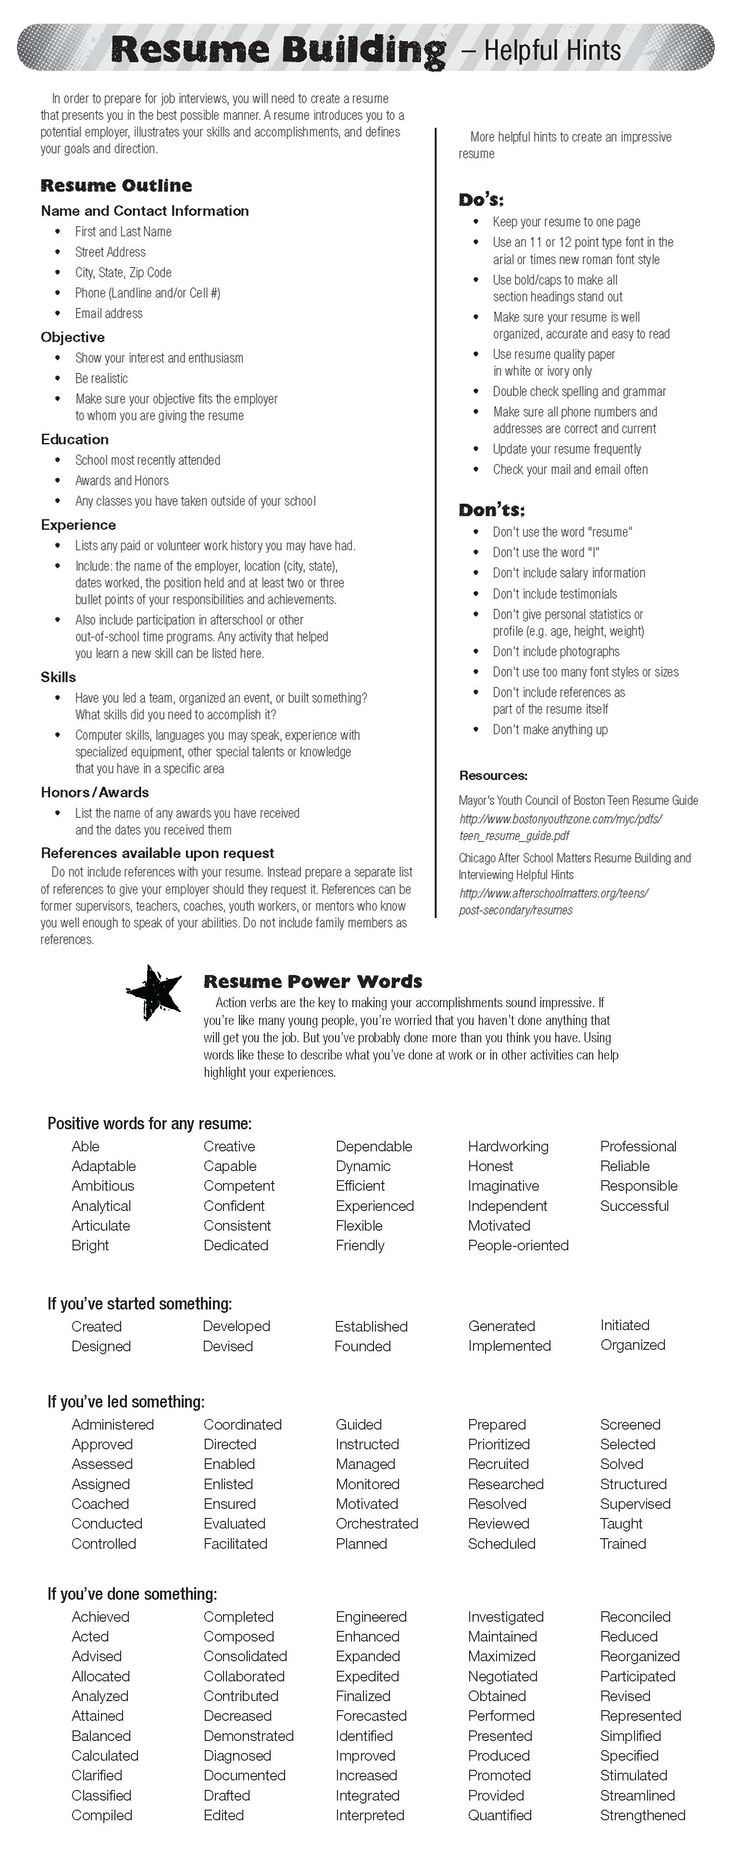 Opposenewapstandardsus  Unique  Ideas About Resume On Pinterest  Cv Format Resume Cv And  With Handsome  Ideas About Resume On Pinterest  Cv Format Resume Cv And Resume Templates With Beauteous Ccna Resume Also Creative Resume Designs In Addition Barista Resume Sample And Basic Resume Example As Well As Words Not To Use On A Resume Additionally Resume Templats From Pinterestcom With Opposenewapstandardsus  Handsome  Ideas About Resume On Pinterest  Cv Format Resume Cv And  With Beauteous  Ideas About Resume On Pinterest  Cv Format Resume Cv And Resume Templates And Unique Ccna Resume Also Creative Resume Designs In Addition Barista Resume Sample From Pinterestcom